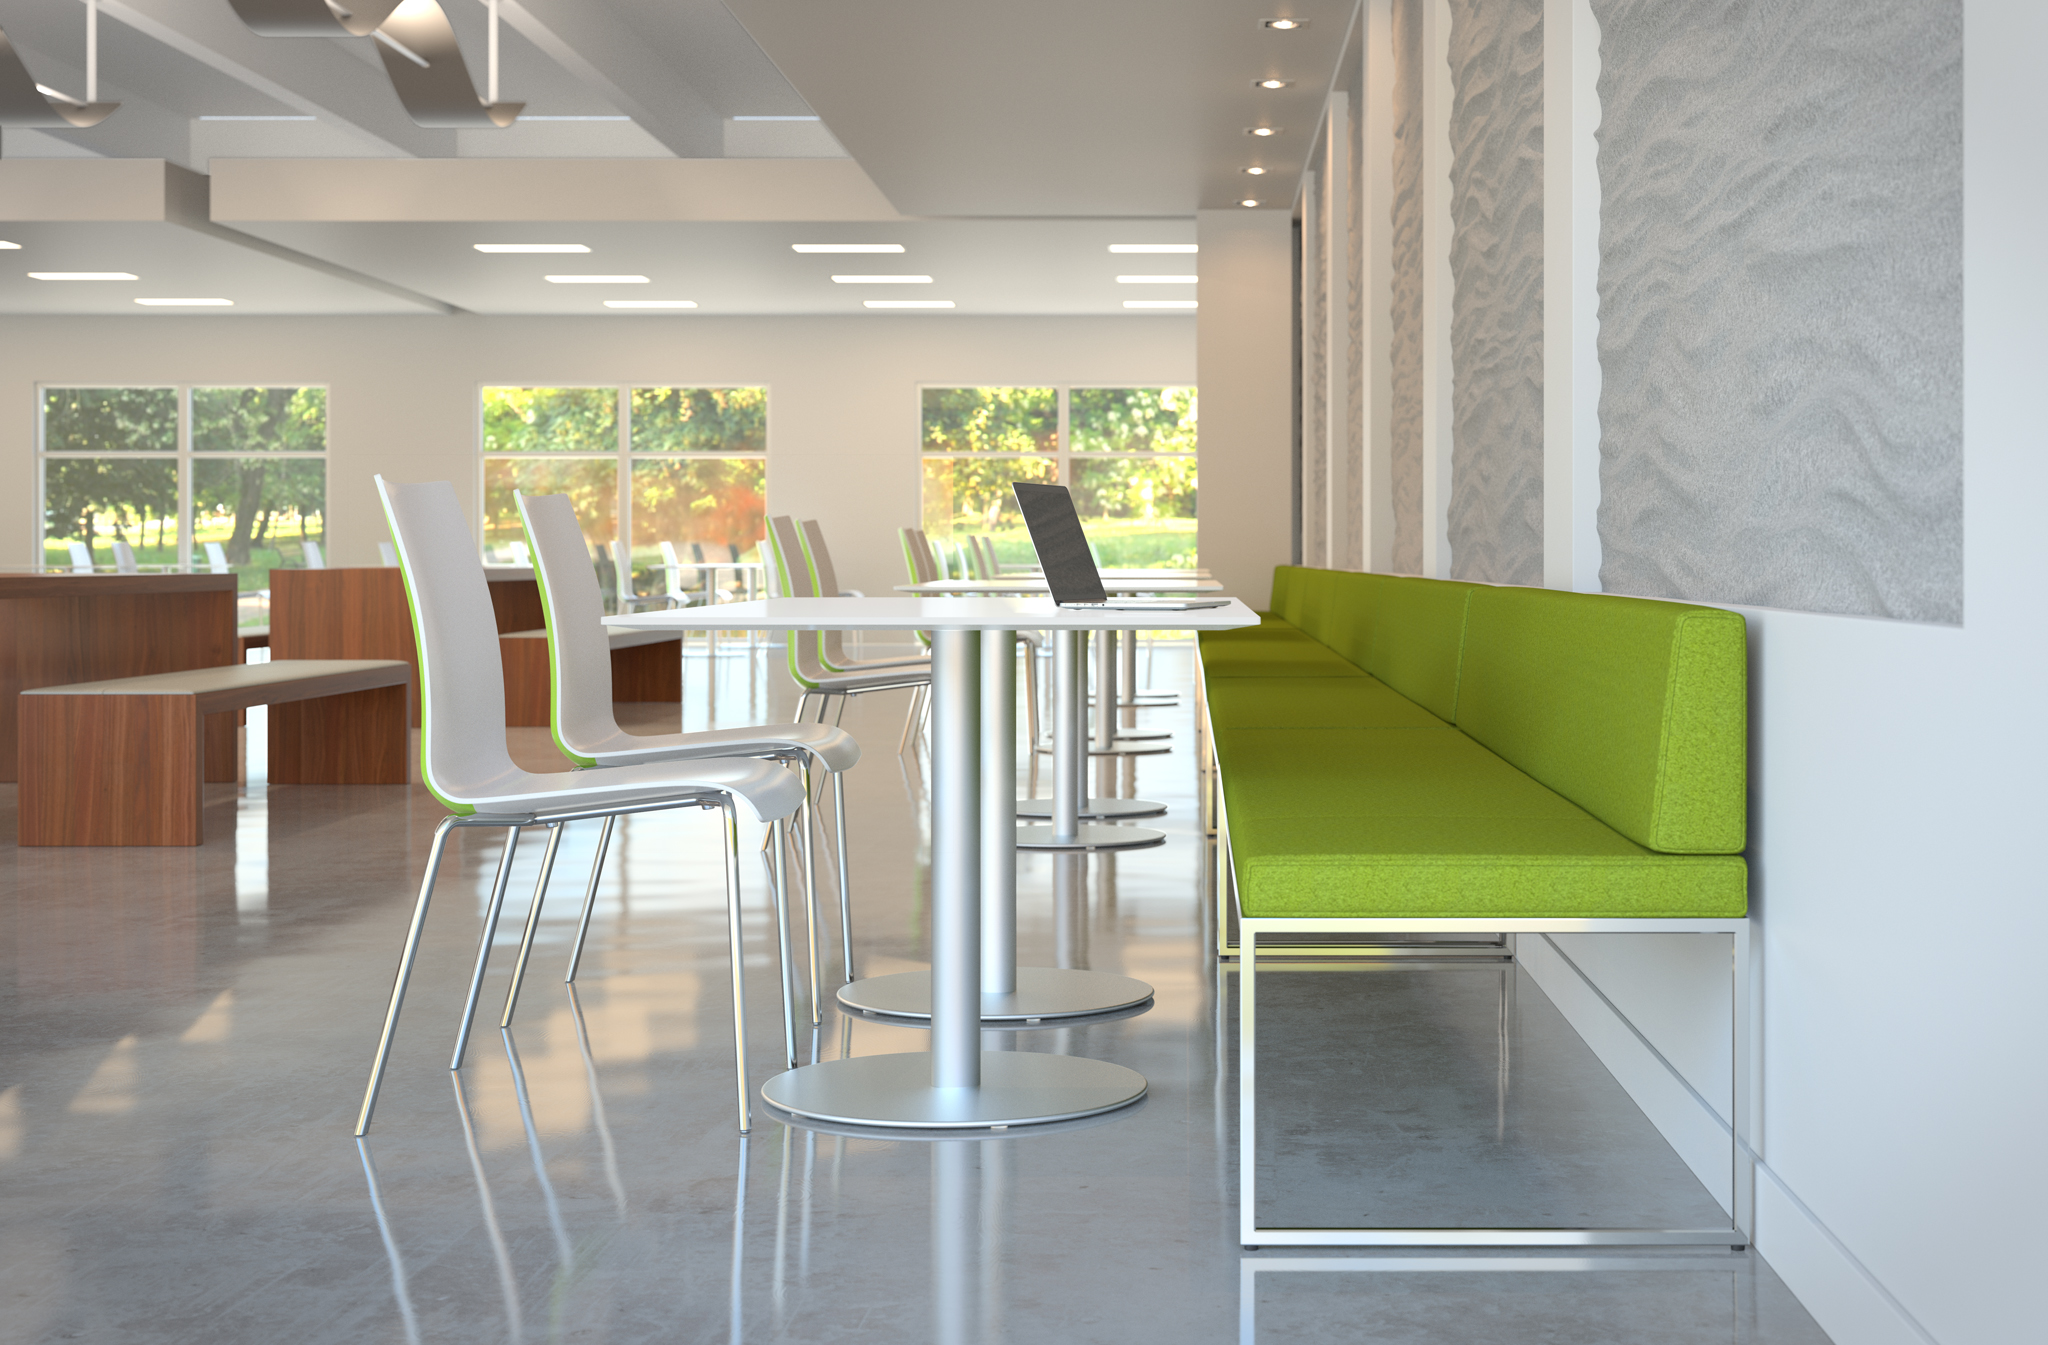 office cafeteria furniture 3d rendering